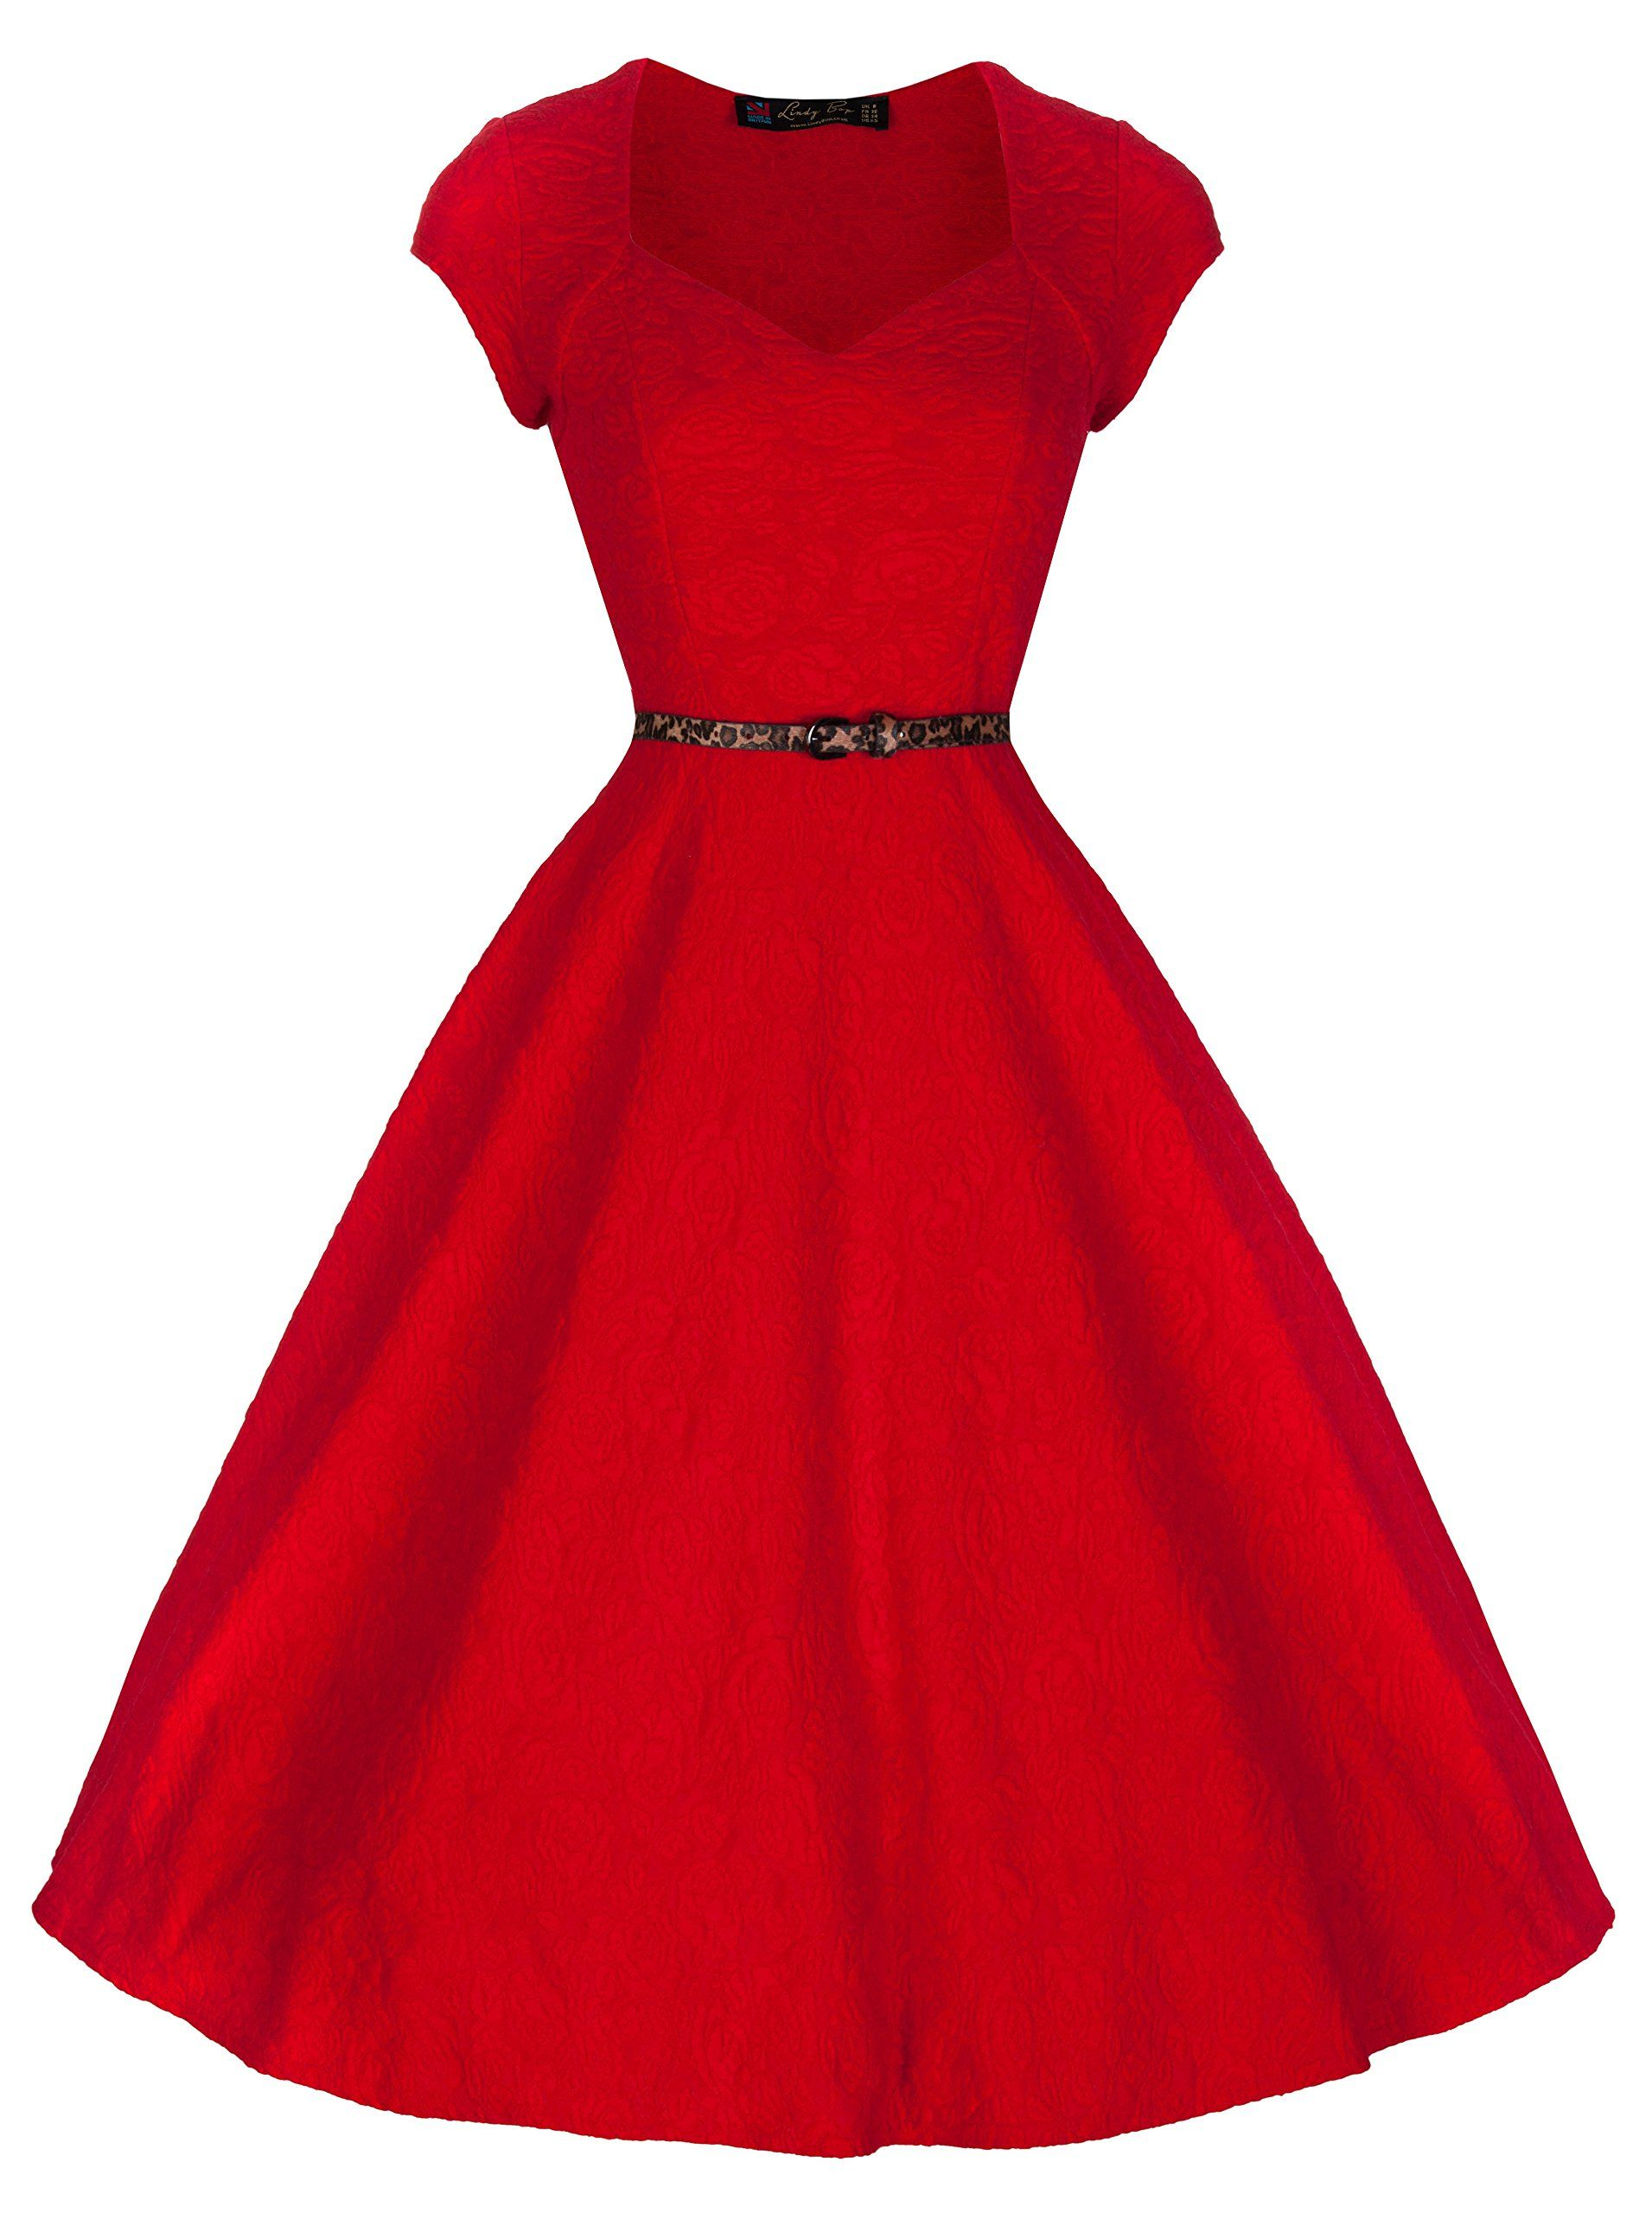 Lindy Bop \'Victoria\' Stunning Sweetheart Vintage 50\'s Swing Dress at ...